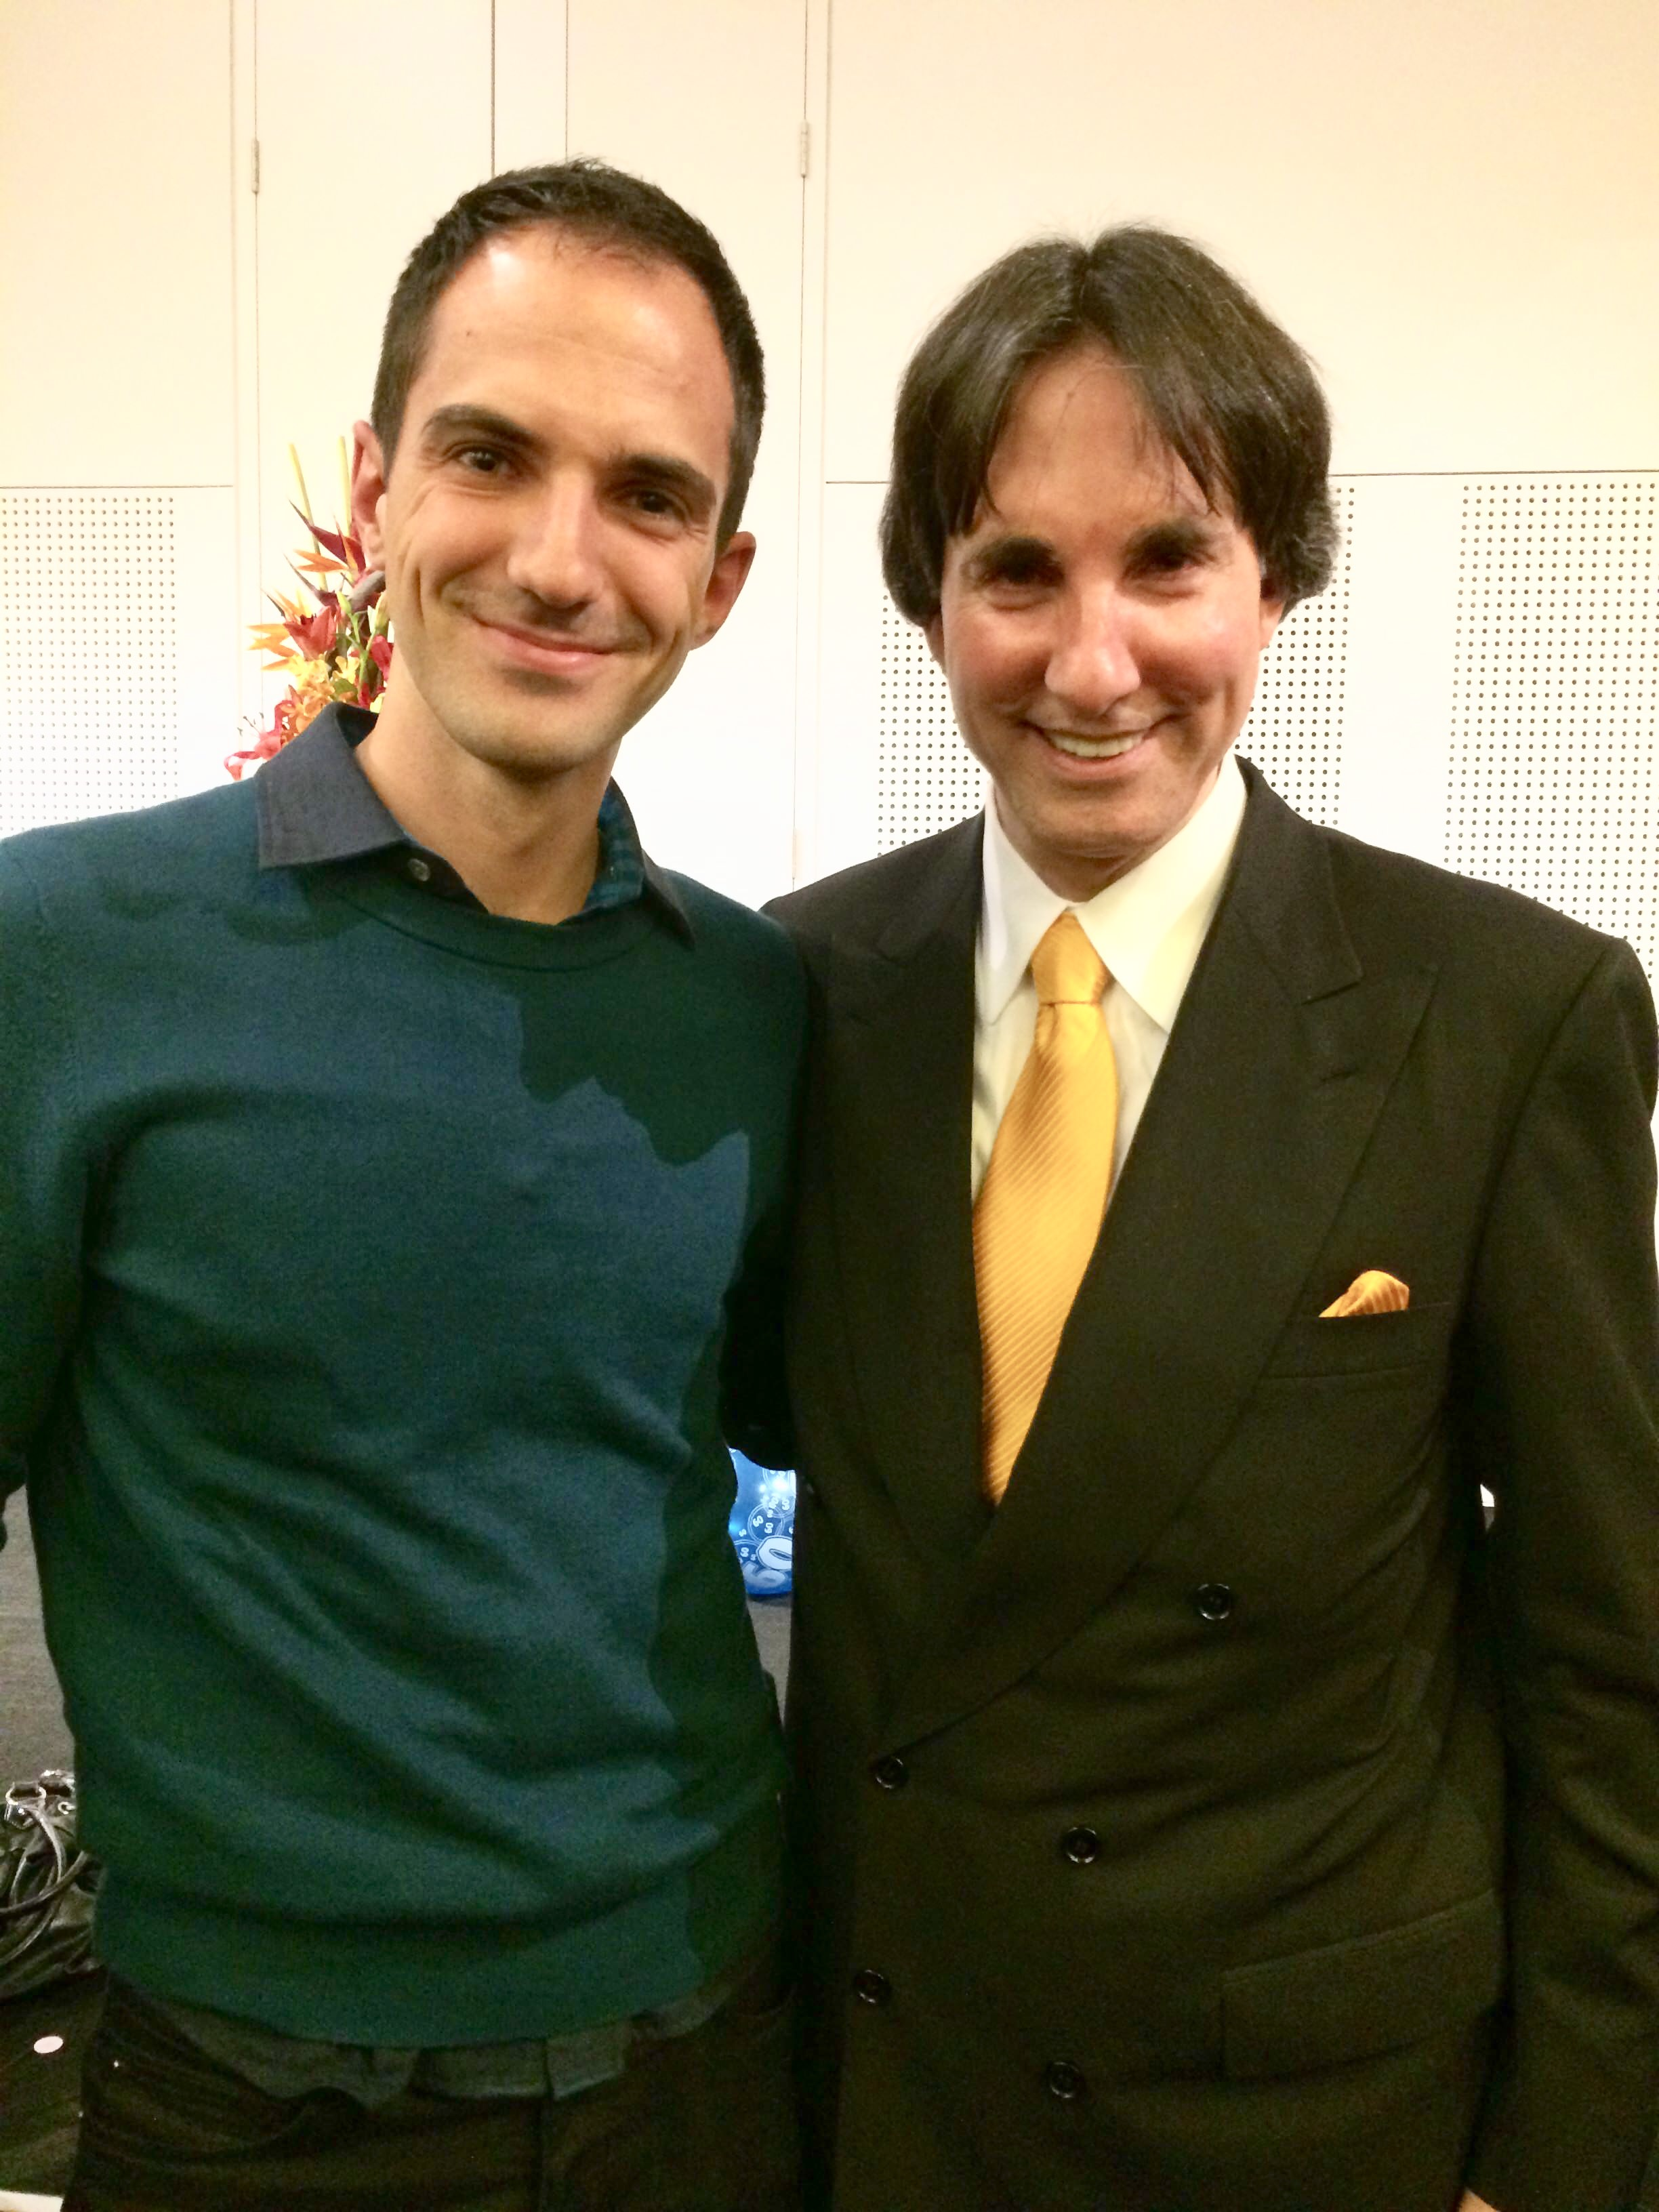 Giorgio Genaus with Dr. John Demartini